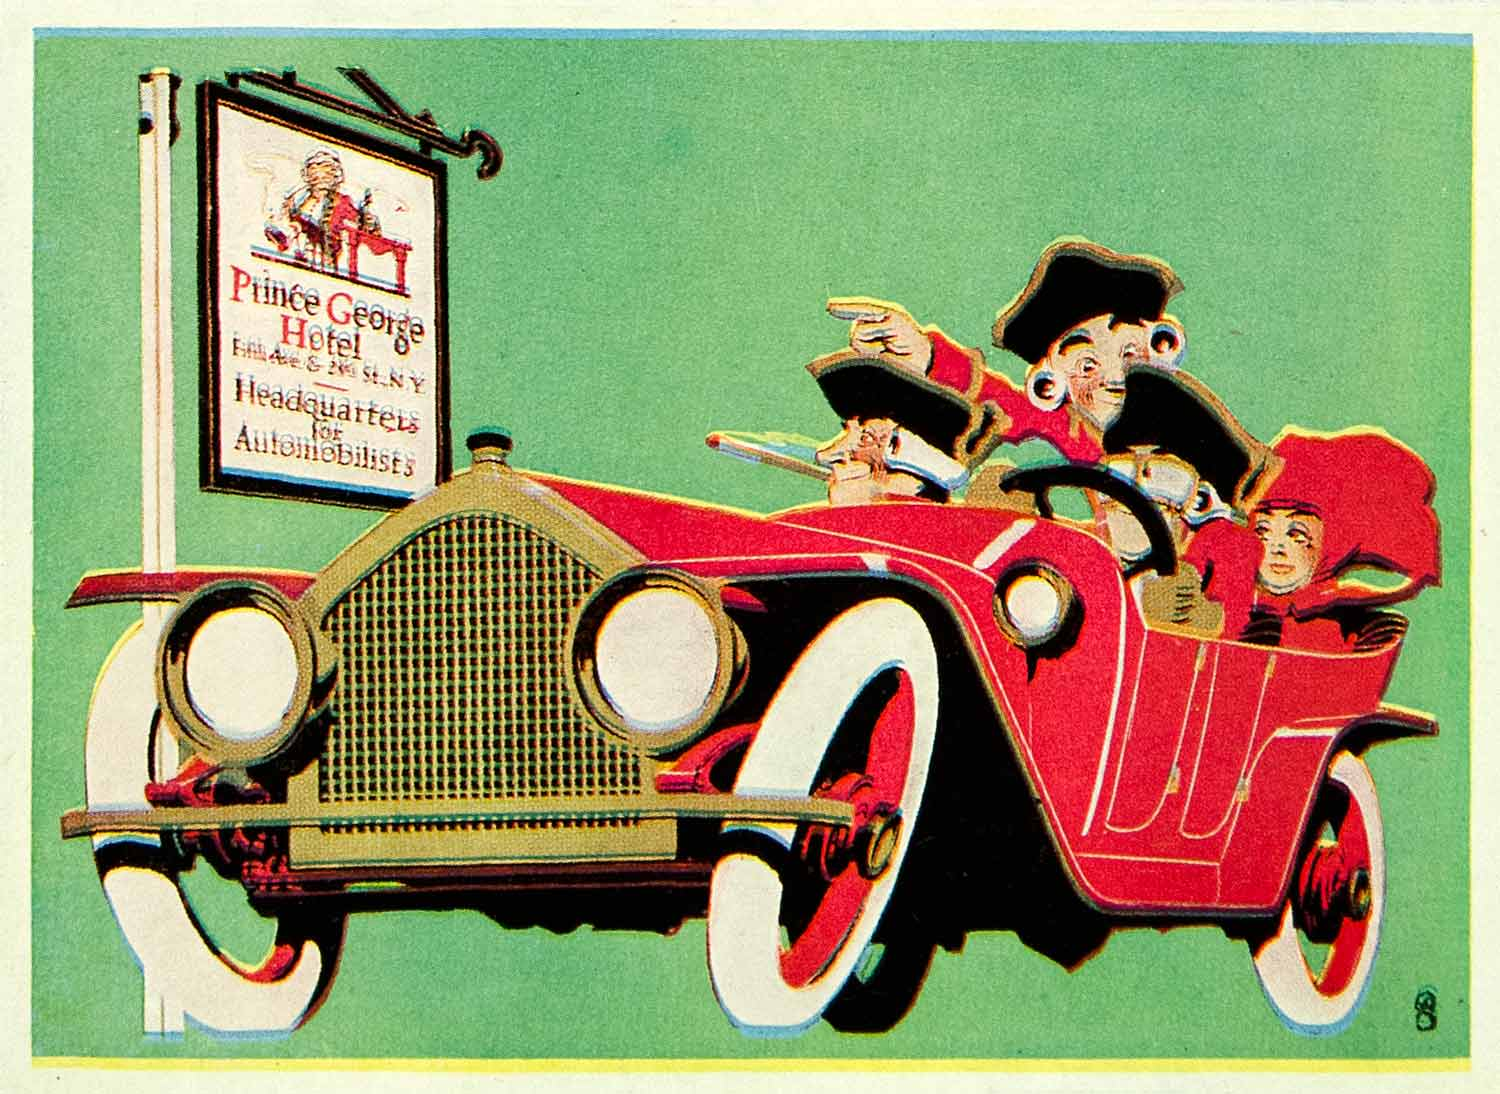 1924 Color Print Frederick G Cooper Prince George Hotel Automobile Car Art POS8B